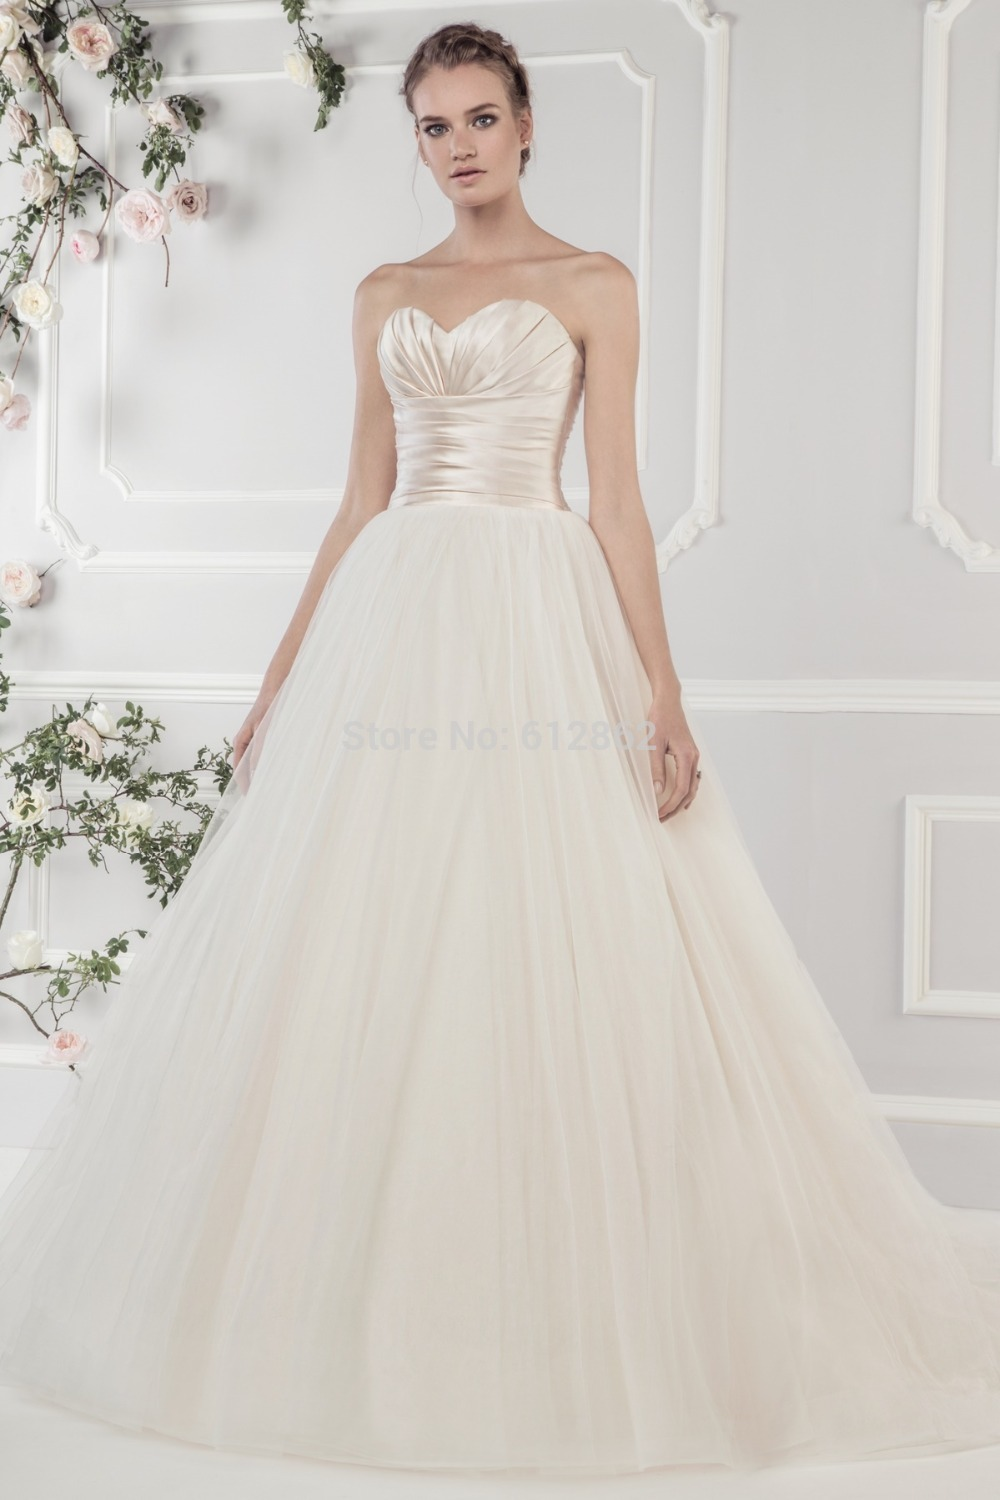 Strapless Sweetheart Ball Gown Champagne Satin Top Ivory Tulle Skirt ...